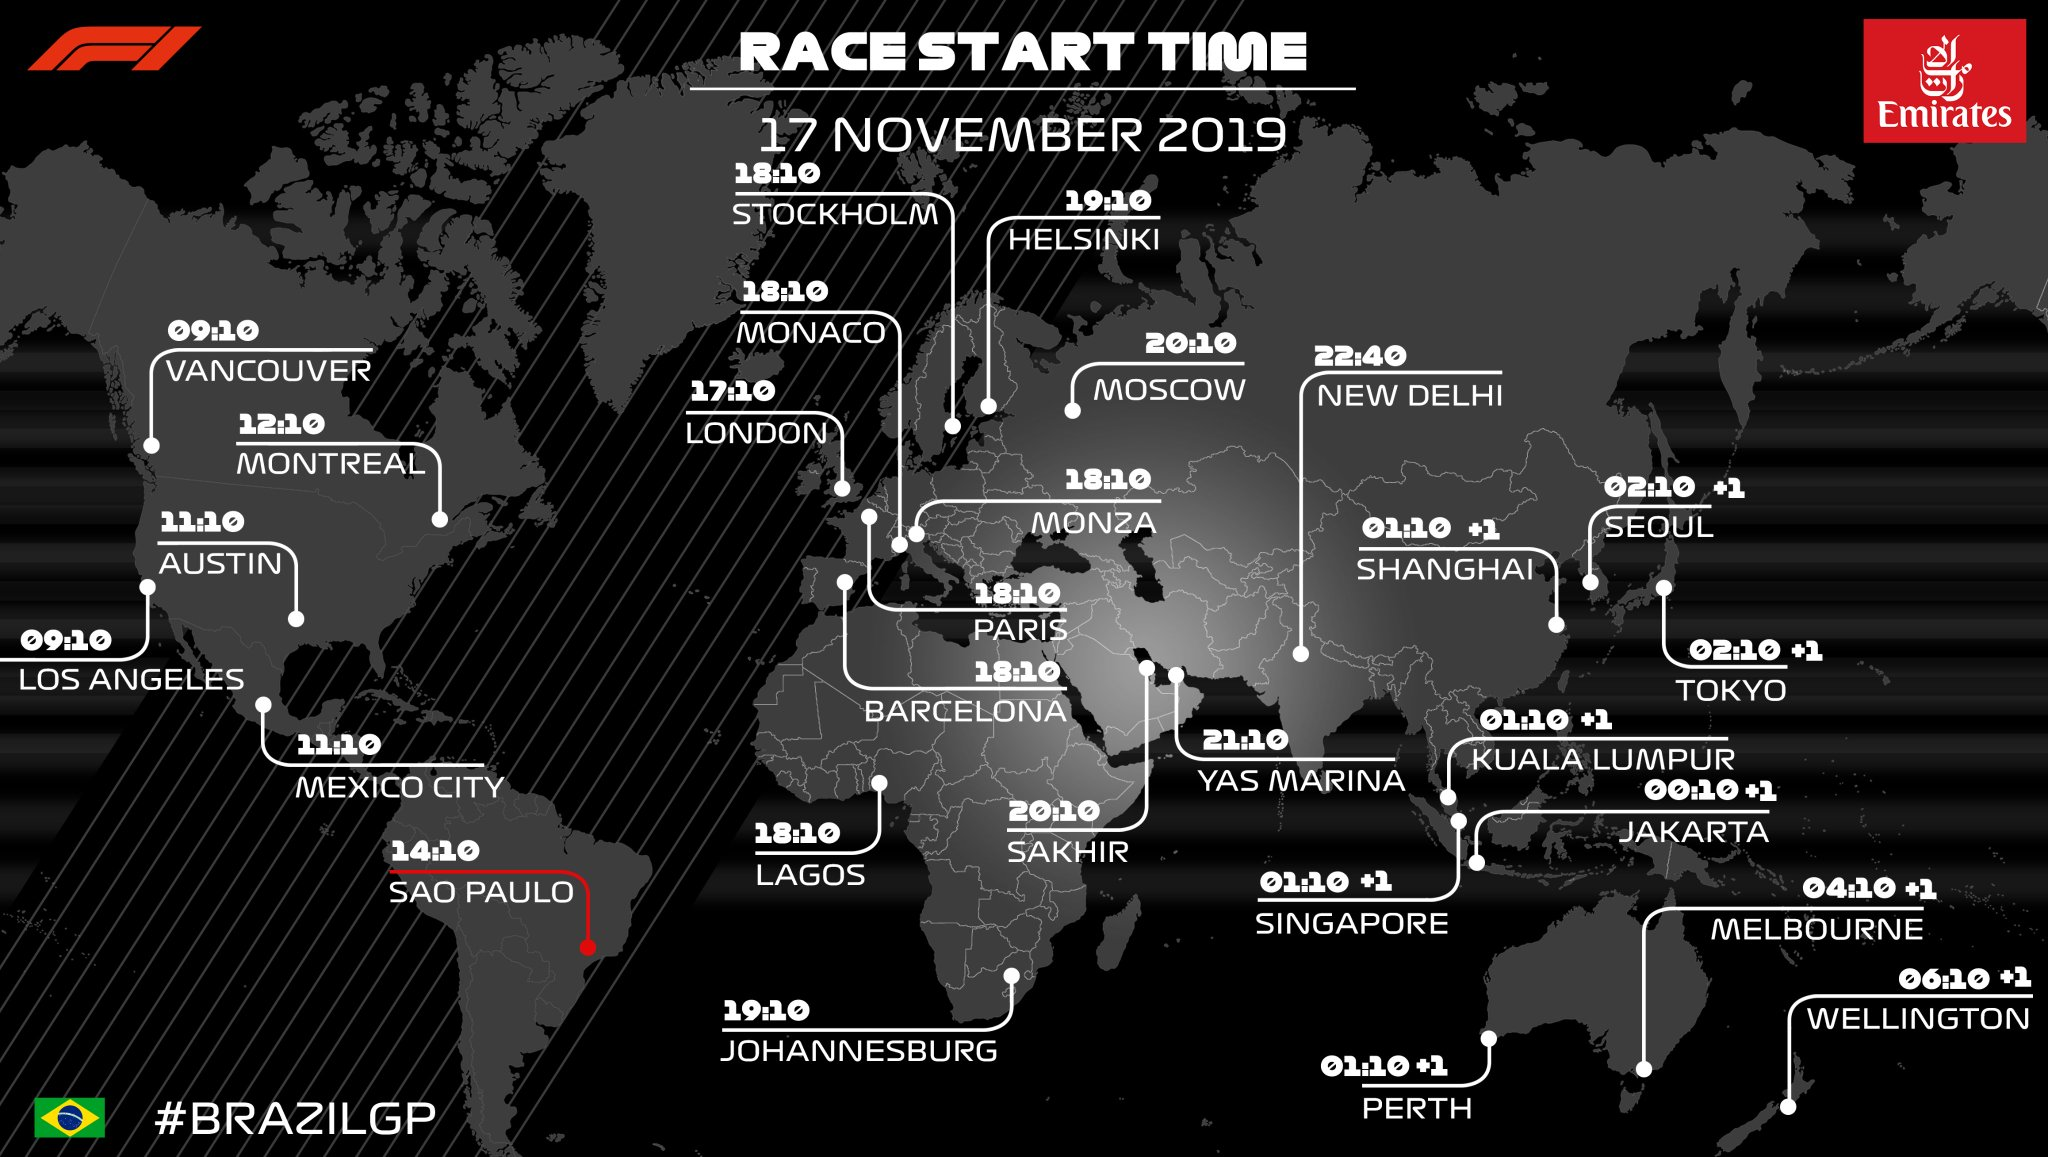 RACE START TIMES: BRAZIL 🇧🇷  It's the penultimate F1 Sunday of 2019   And it's set to be another thriller in Brazil  Here's what time it starts where you are ⏰🌎  #BrazilGP #F1Starts https://t.co/cSOJgsAsTZ